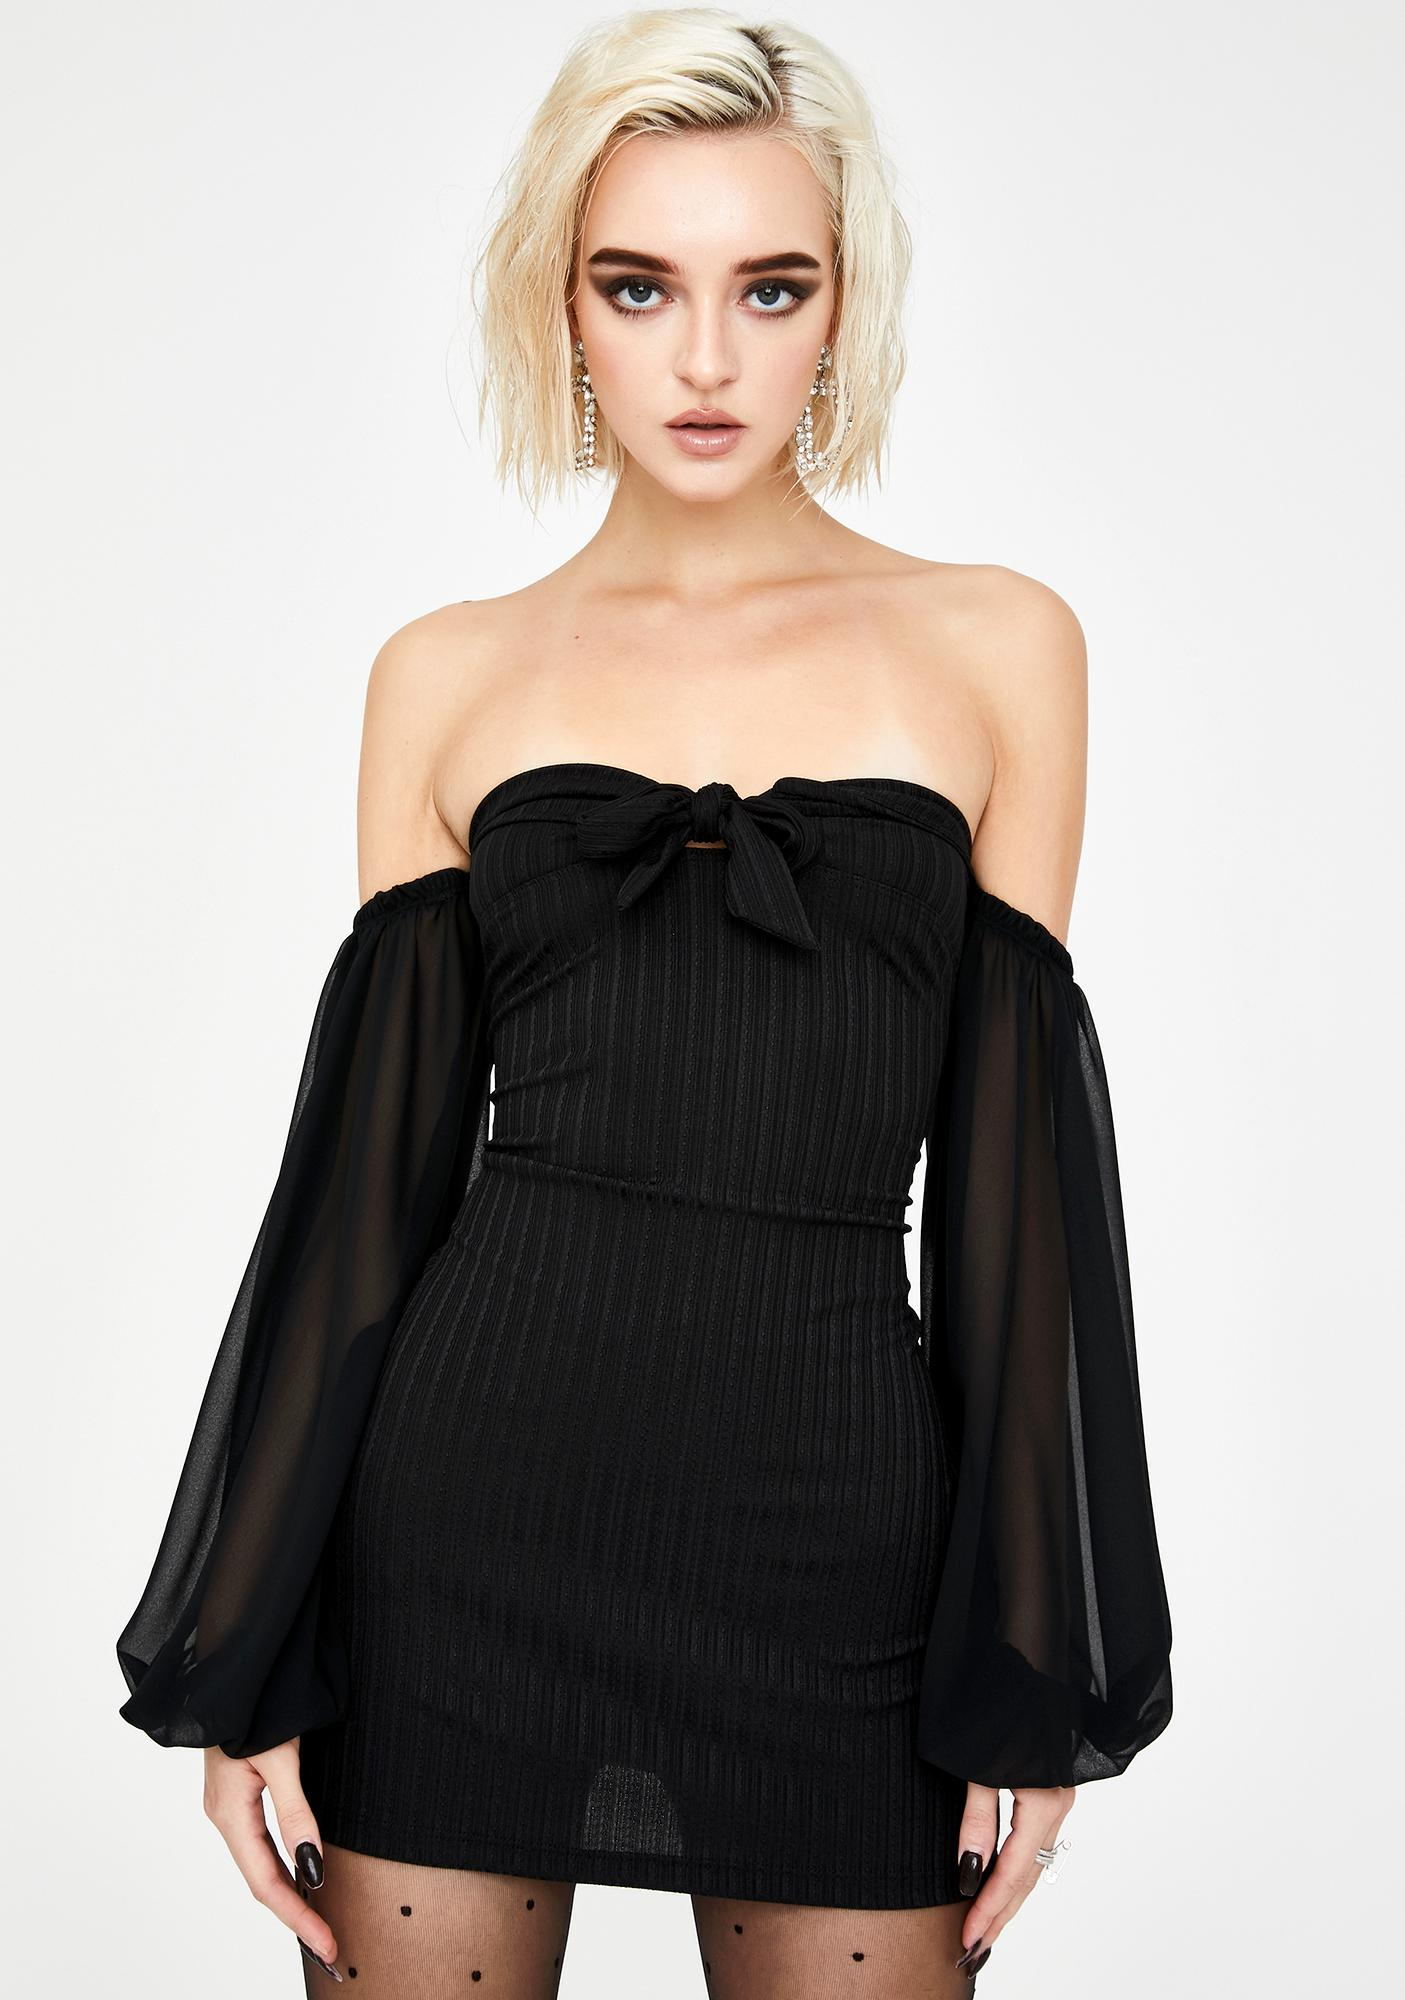 Kiki Riki Hard To Please Off The Shoulder Dress